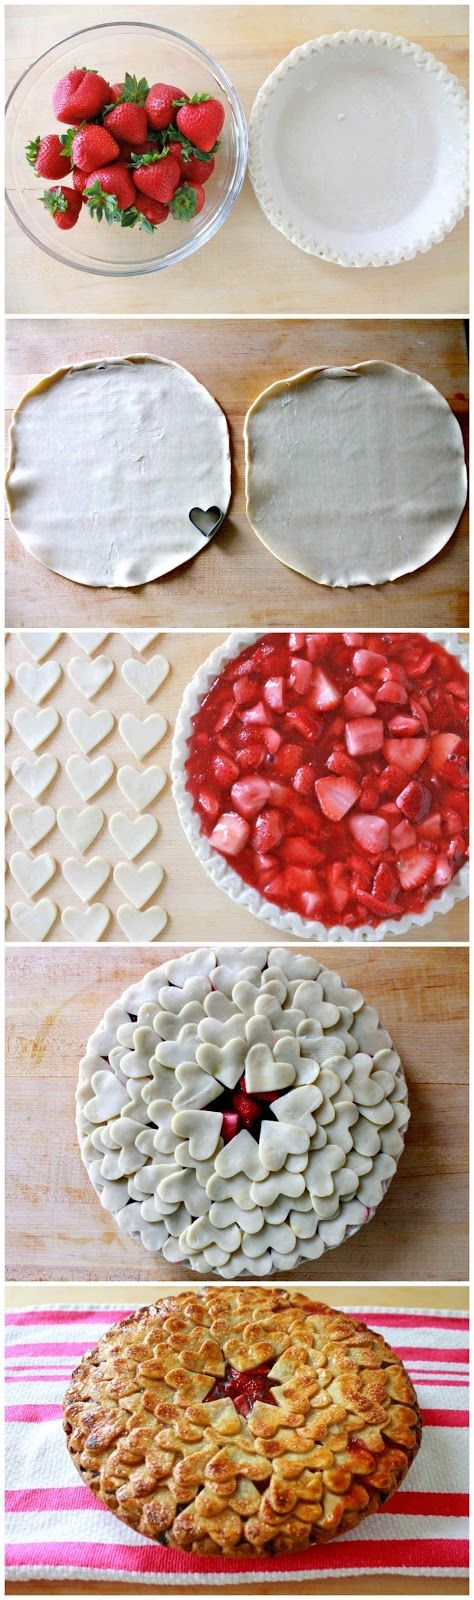 Heart pie crust.